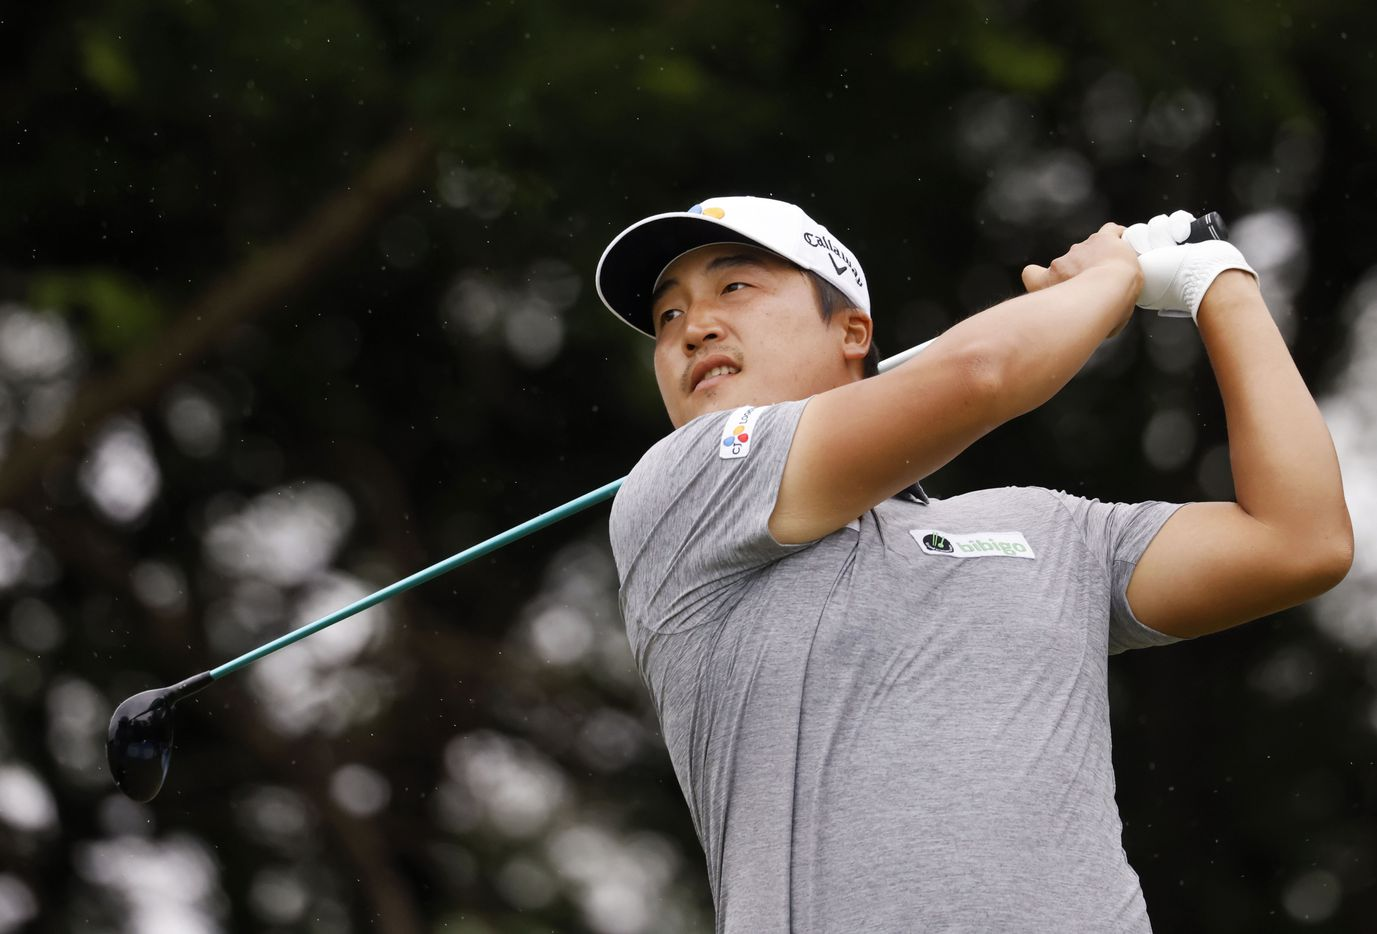 Kyoung-Hoon Lee watches his ball after teeing off on the 5th hole during round 4 of the AT&T Byron Nelson  at TPC Craig Ranch on Saturday, May 16, 2021 in McKinney, Texas. (Vernon Bryant/The Dallas Morning News)